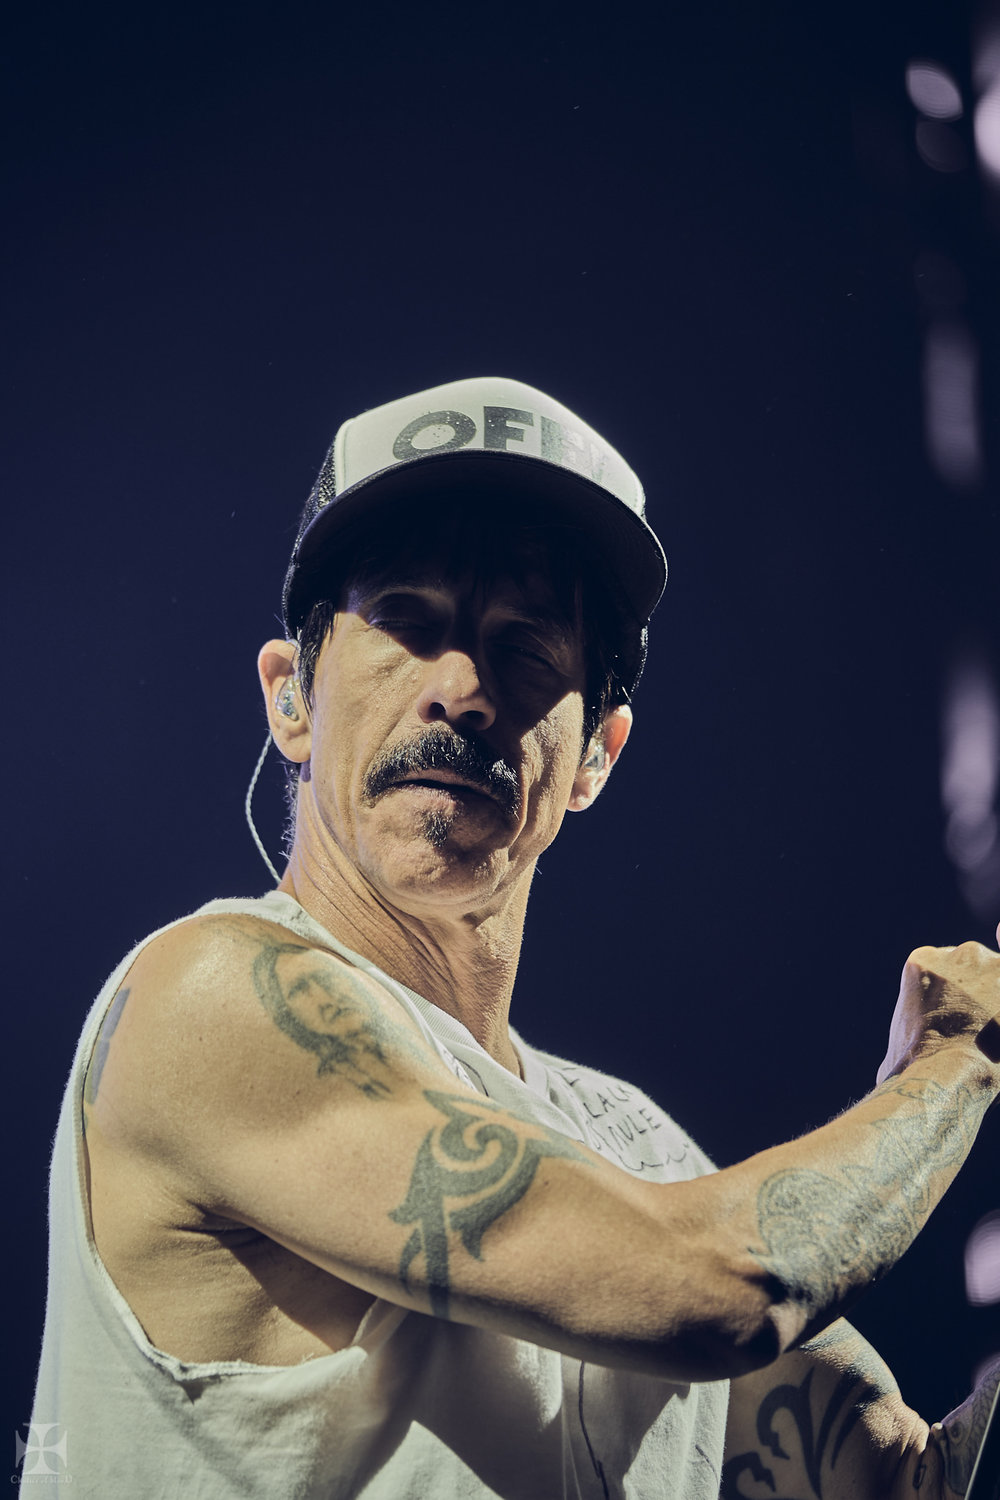 2019.03 RHCP - Red Hot Chilli Peppers 0112.jpg